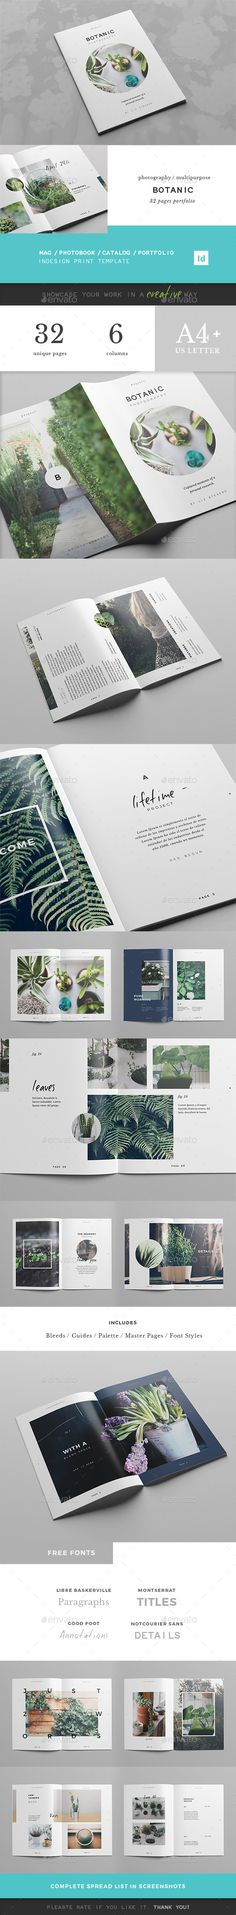 Botanic / Multipurpose Creative Portfolio by pagebeat. Price $17 #cleanbrochuredesign #minimalistbrochuredesign #modernbrochuredesign